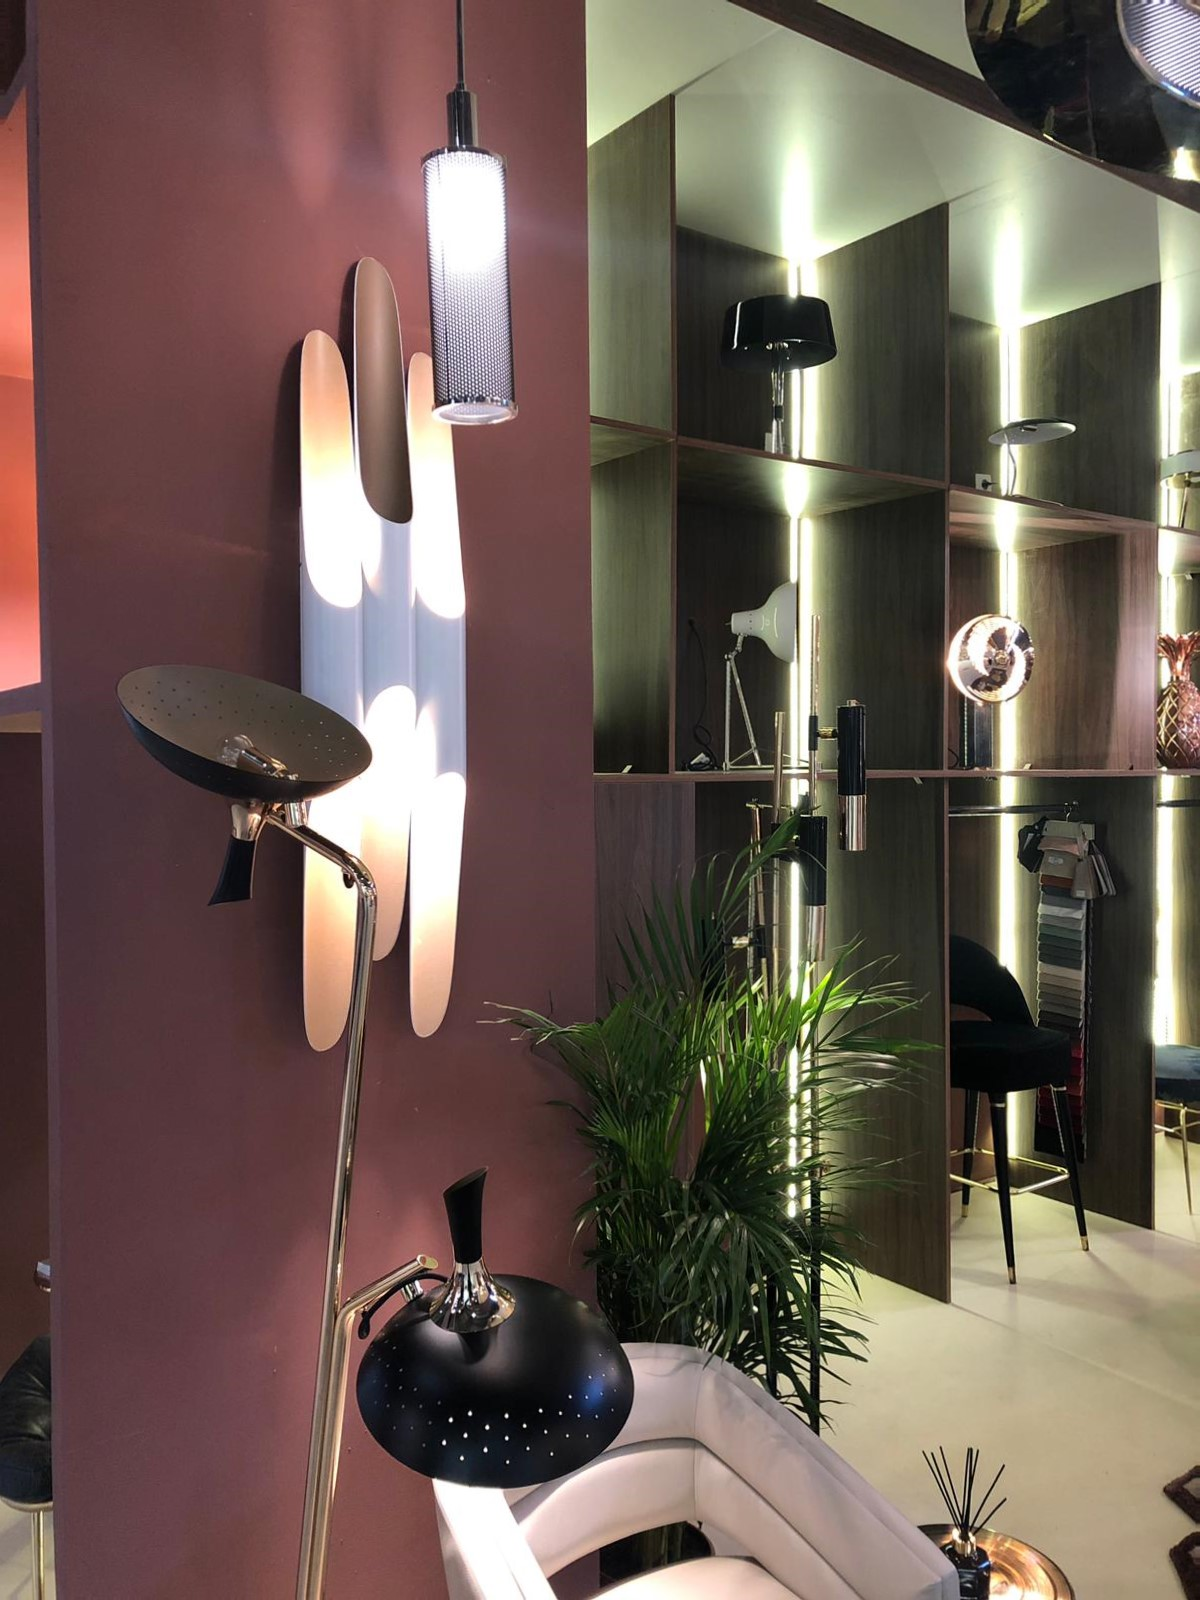 Almost Coming To Na End, See What You Missed At Maison Et Objet 2019 8 Maison Et Objet 2019 Almost Coming To An End, See What You Missed At Maison Et Objet 2019 Almost Coming To Na End See What You Missed At Maison Et Objet 2019 8